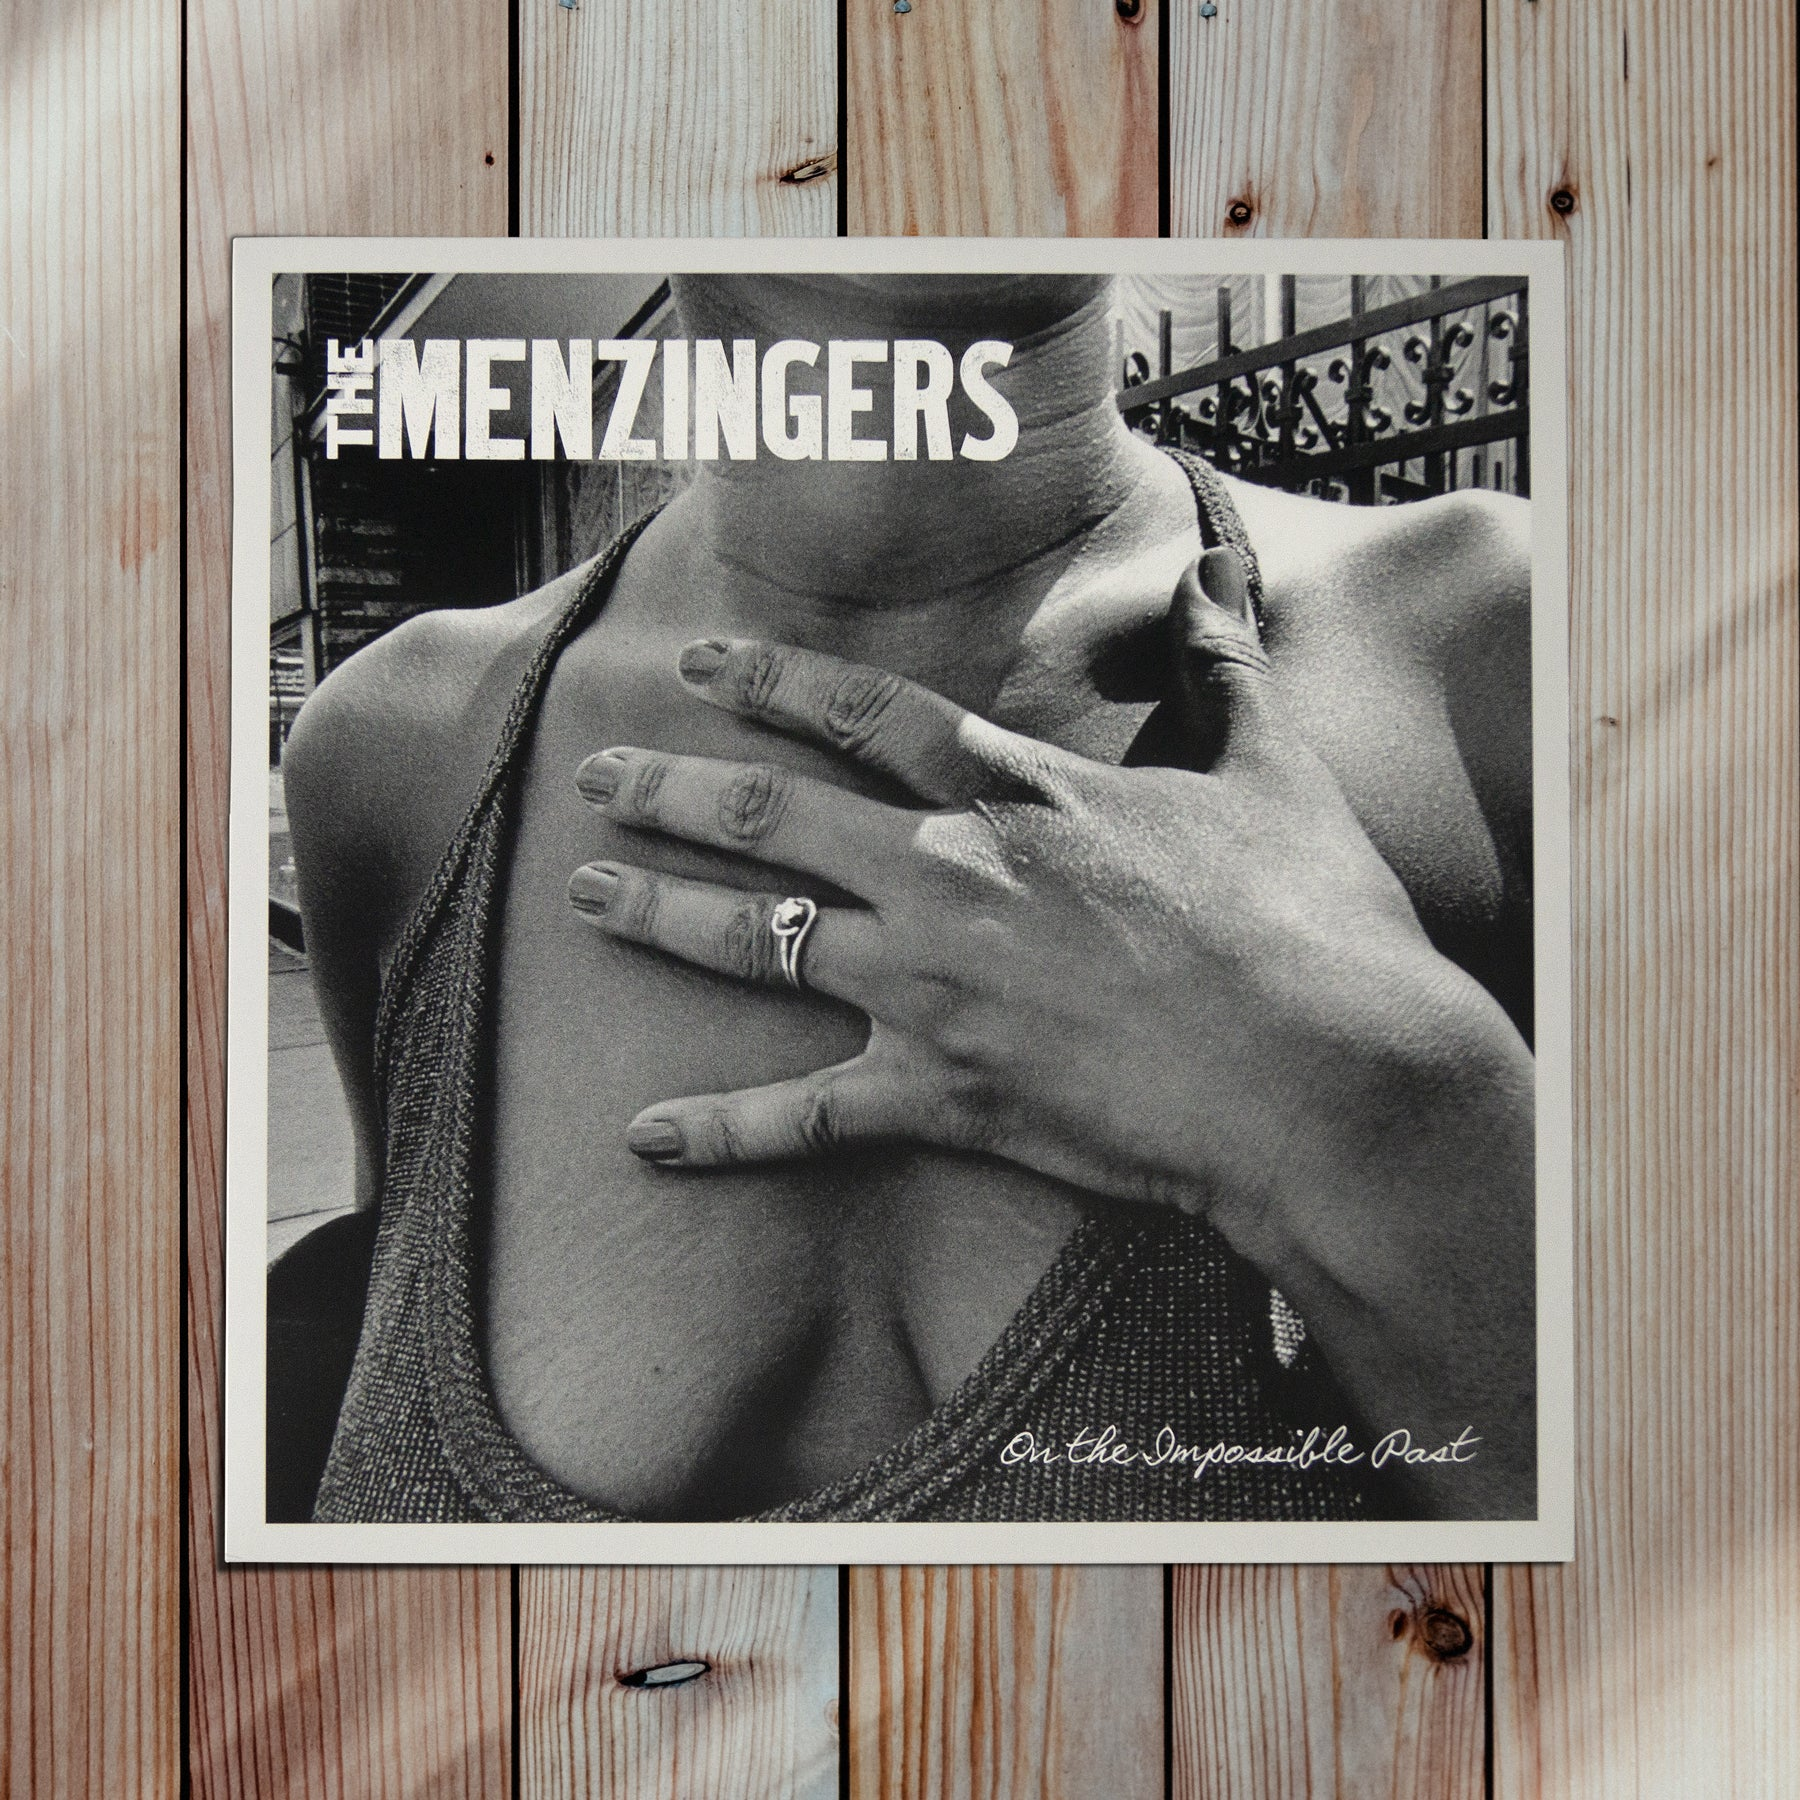 THE MENZINGERS - ON THE IMPOSSIBLE PAST - 12 VINYL